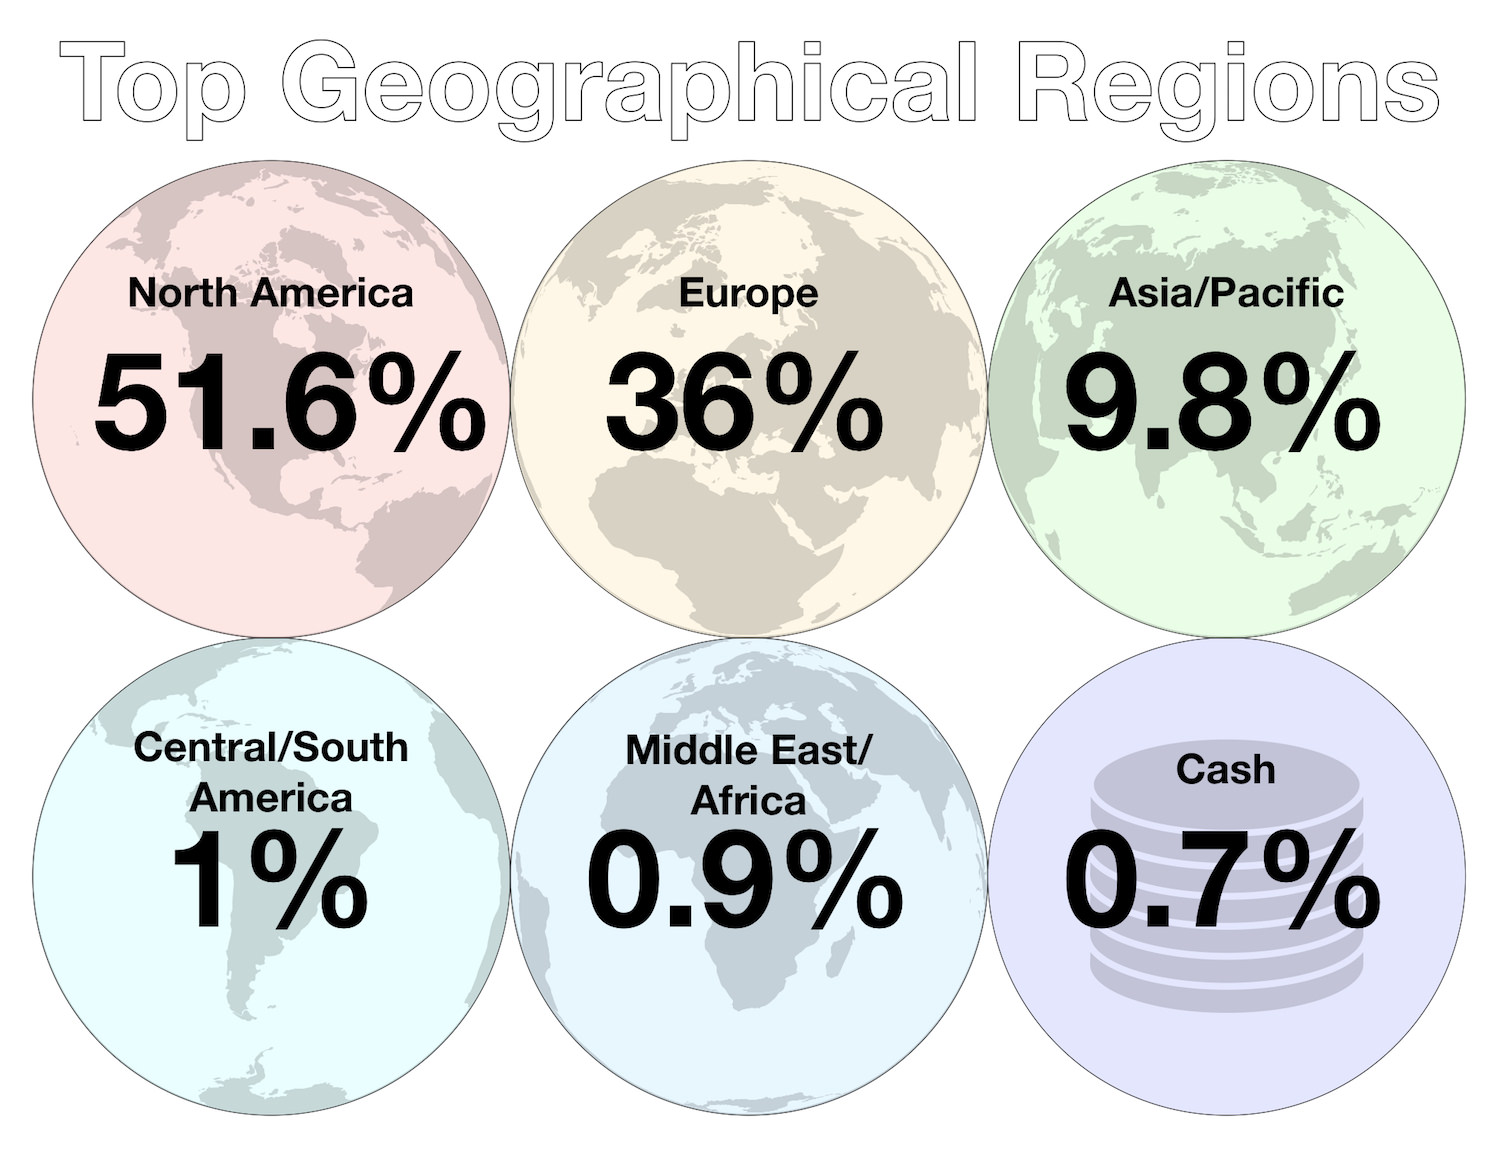 June 2018 - Investments - Top Geographical Regions